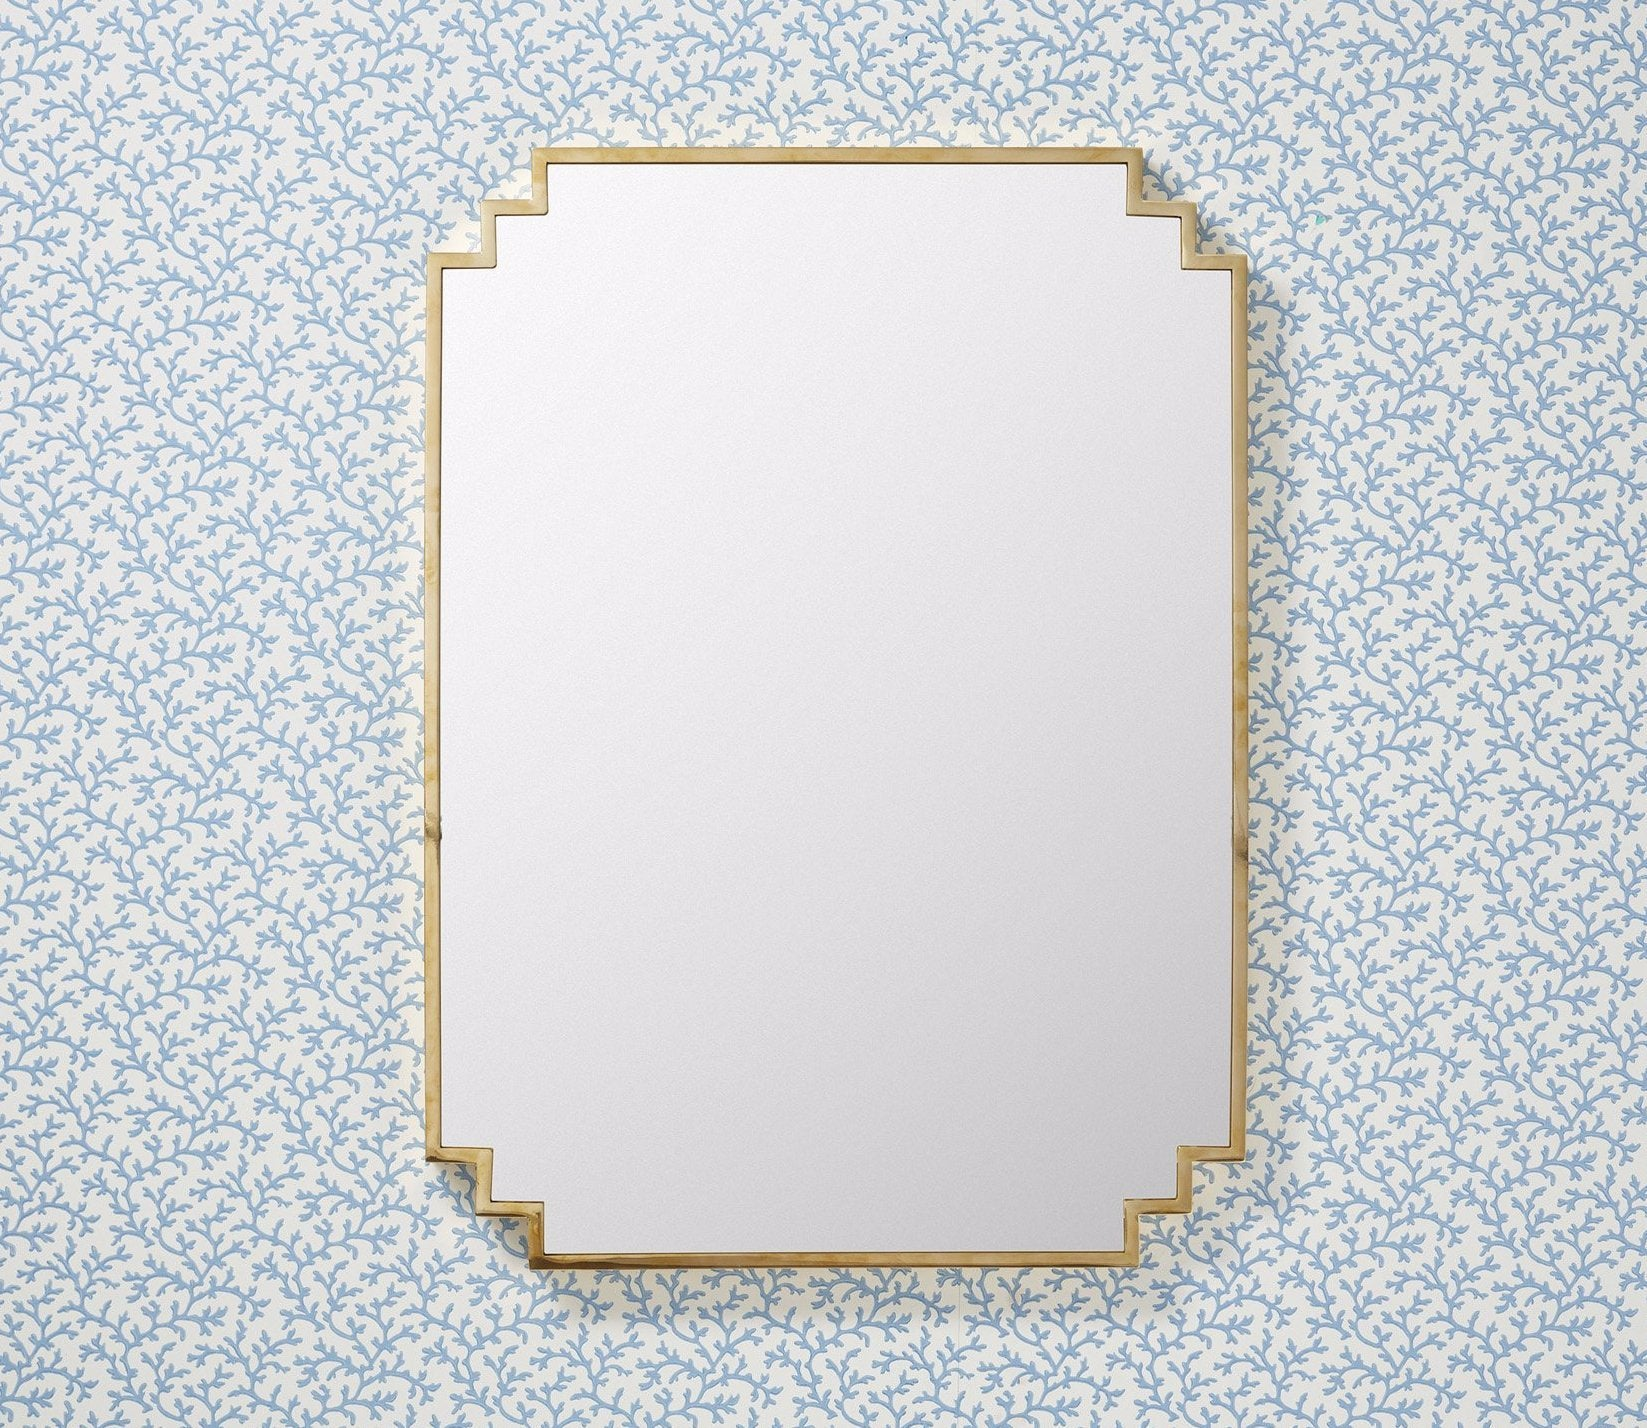 Augustus Wall Mirror Product Image 1